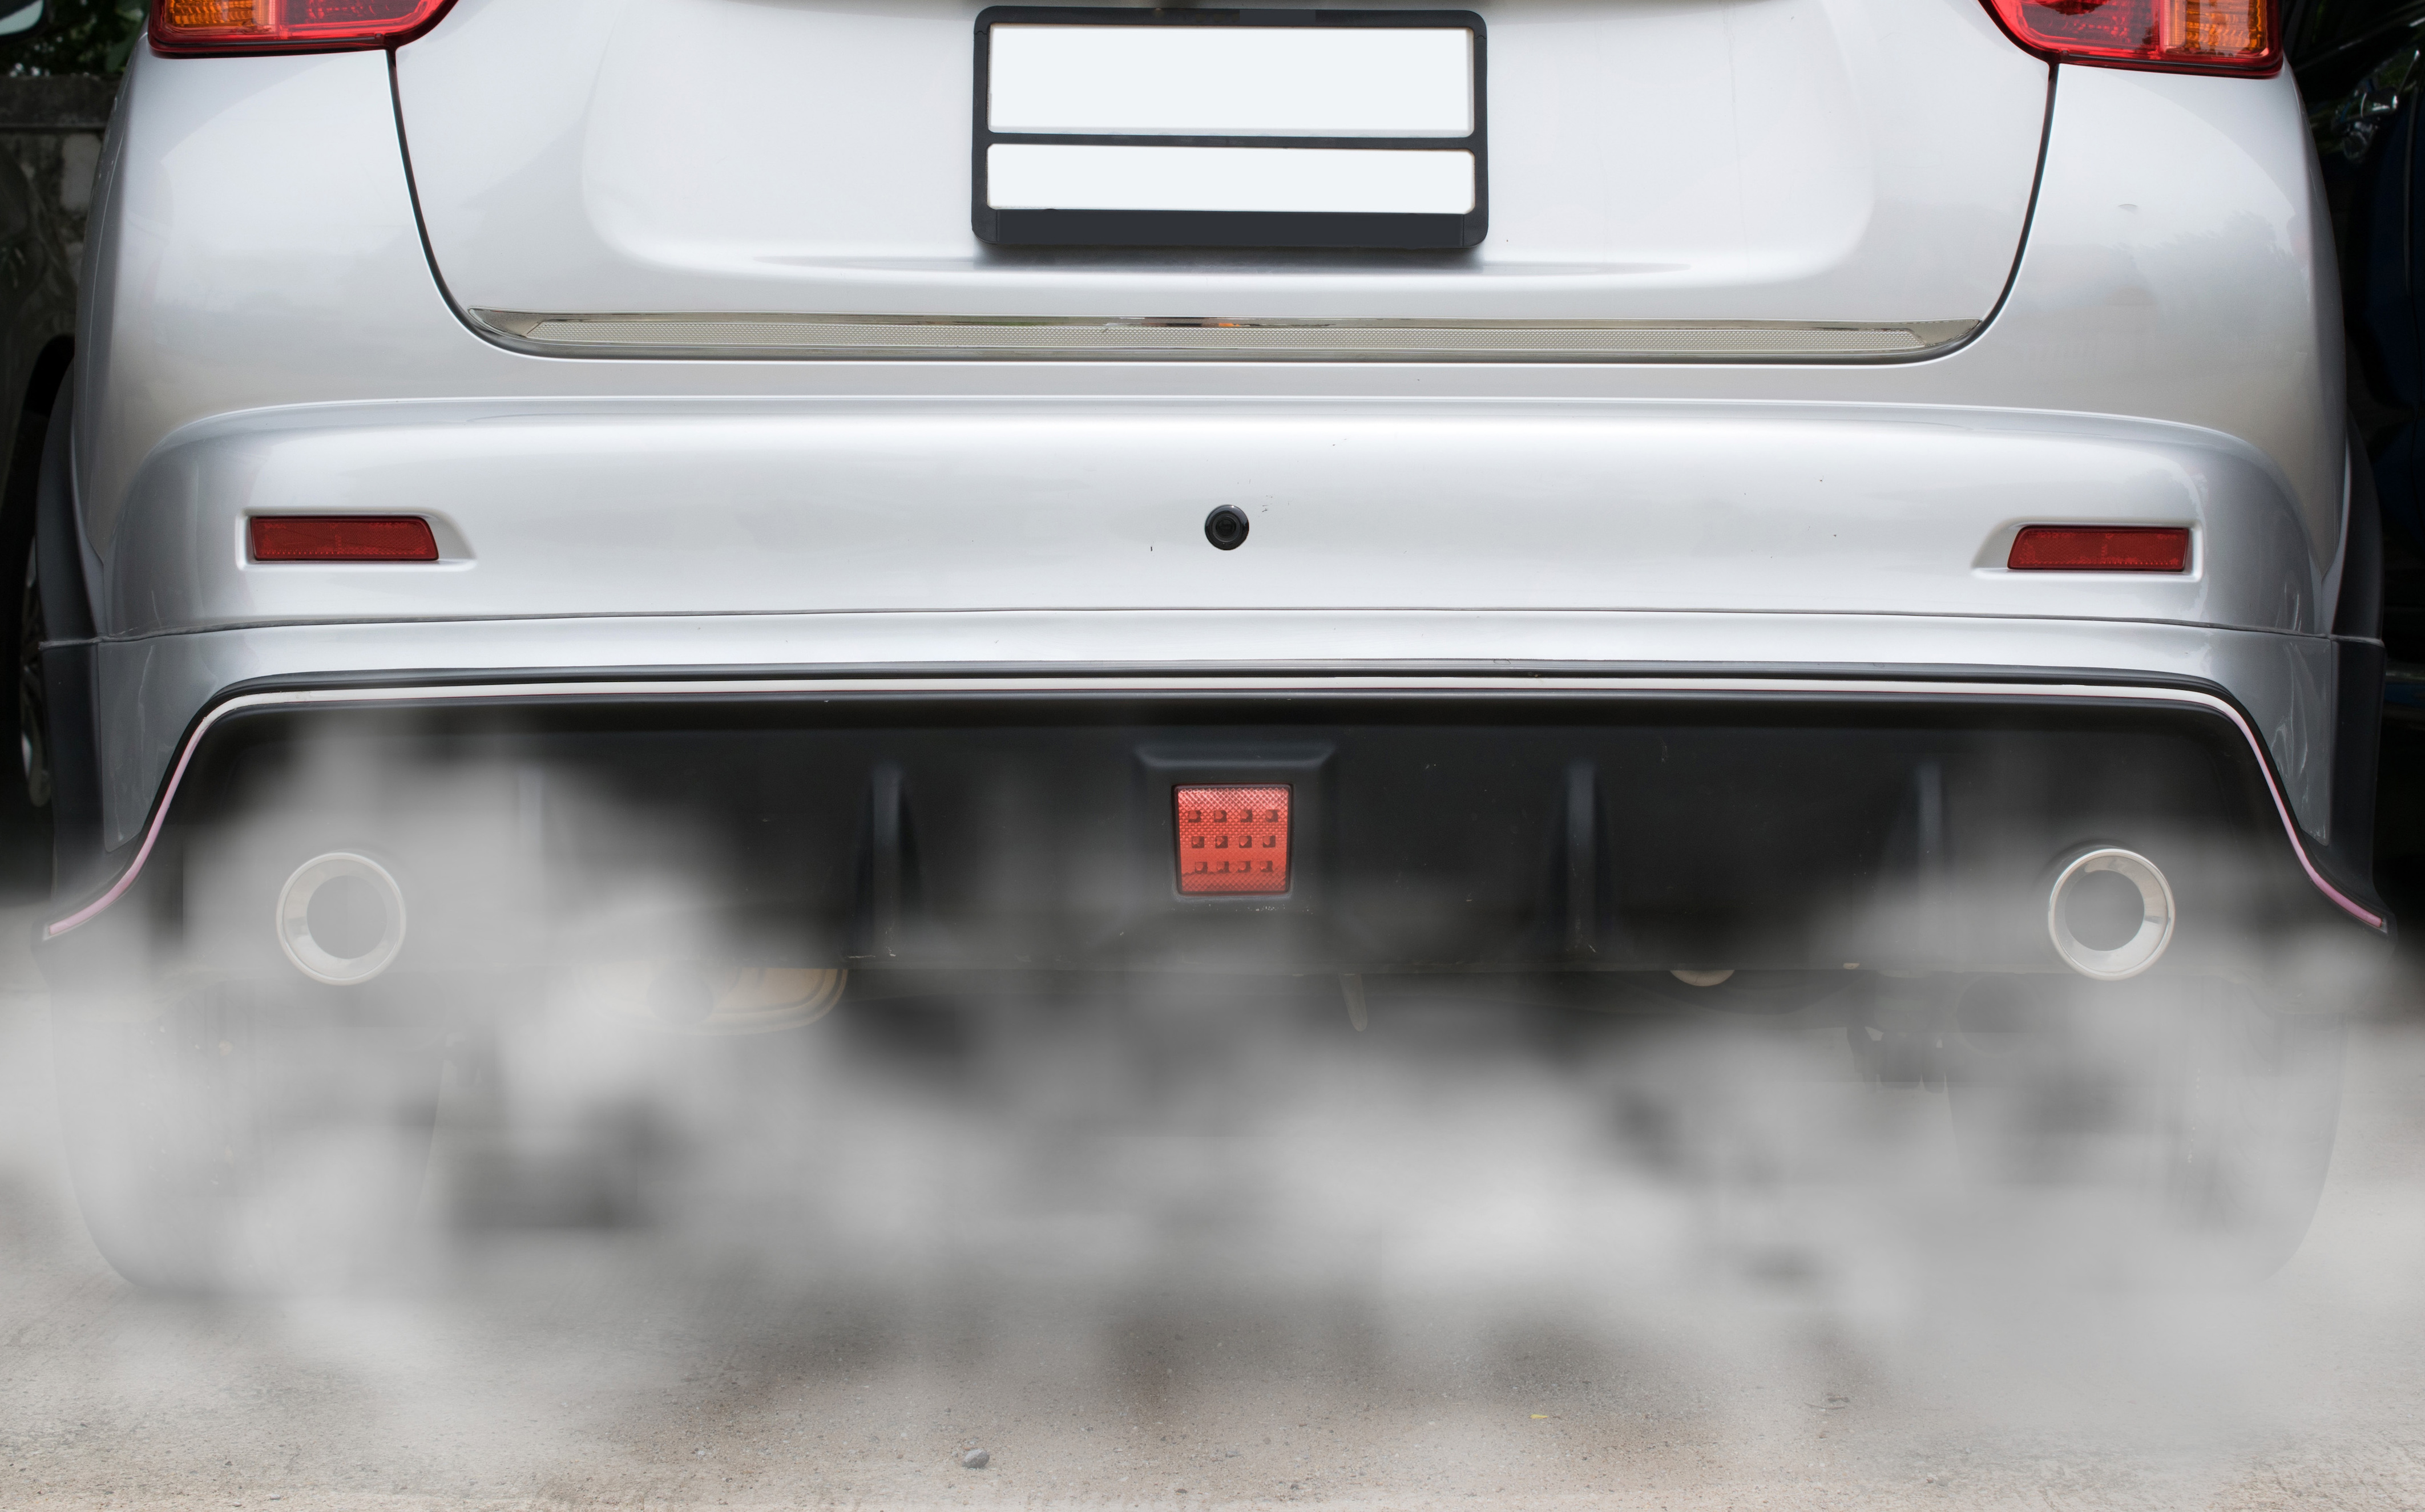 A new analysis has found that road pricing is the most effective way of lessening harmful vehicle emissions.